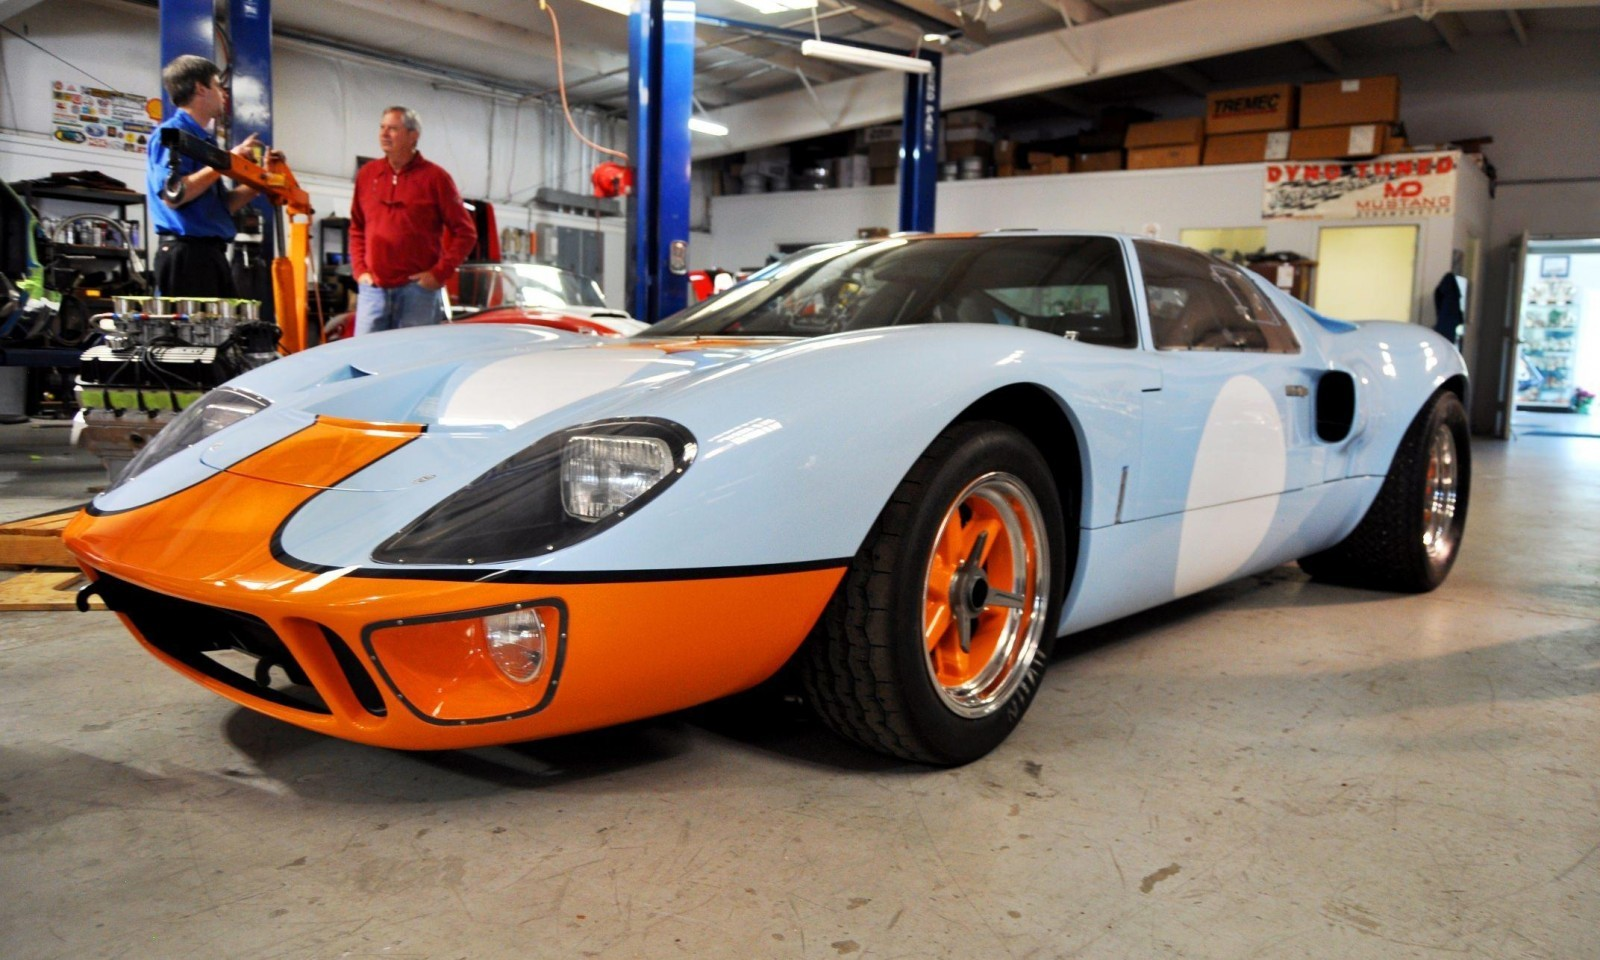 2014 Superformance GT40 Mark I - MEGA Photo Shoot and Ride-Along Videos 7